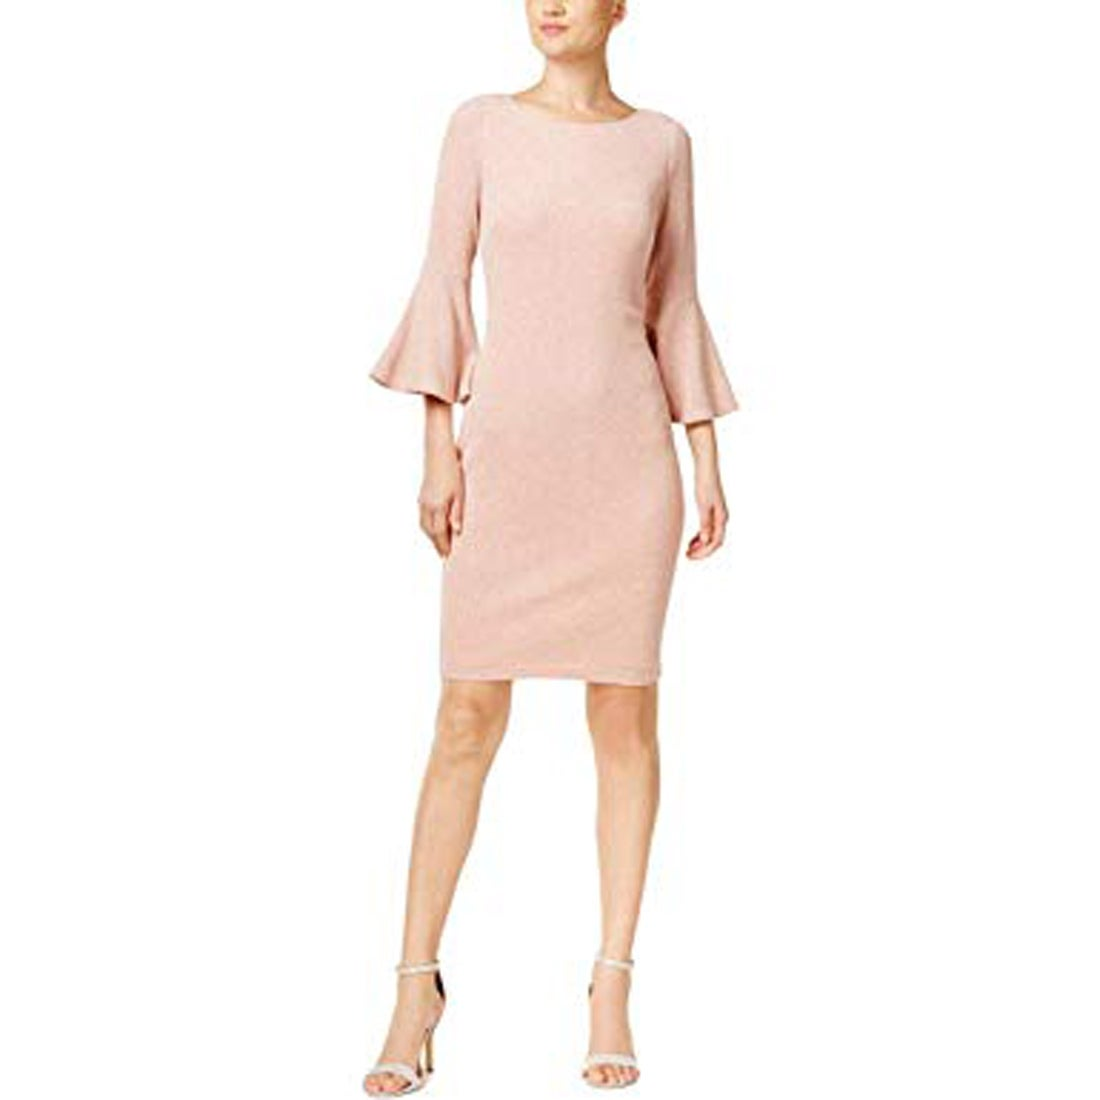 1a1403943a875c Calvin Klein Dresses | Find Great Women's Clothing Deals Shopping at  Overstock